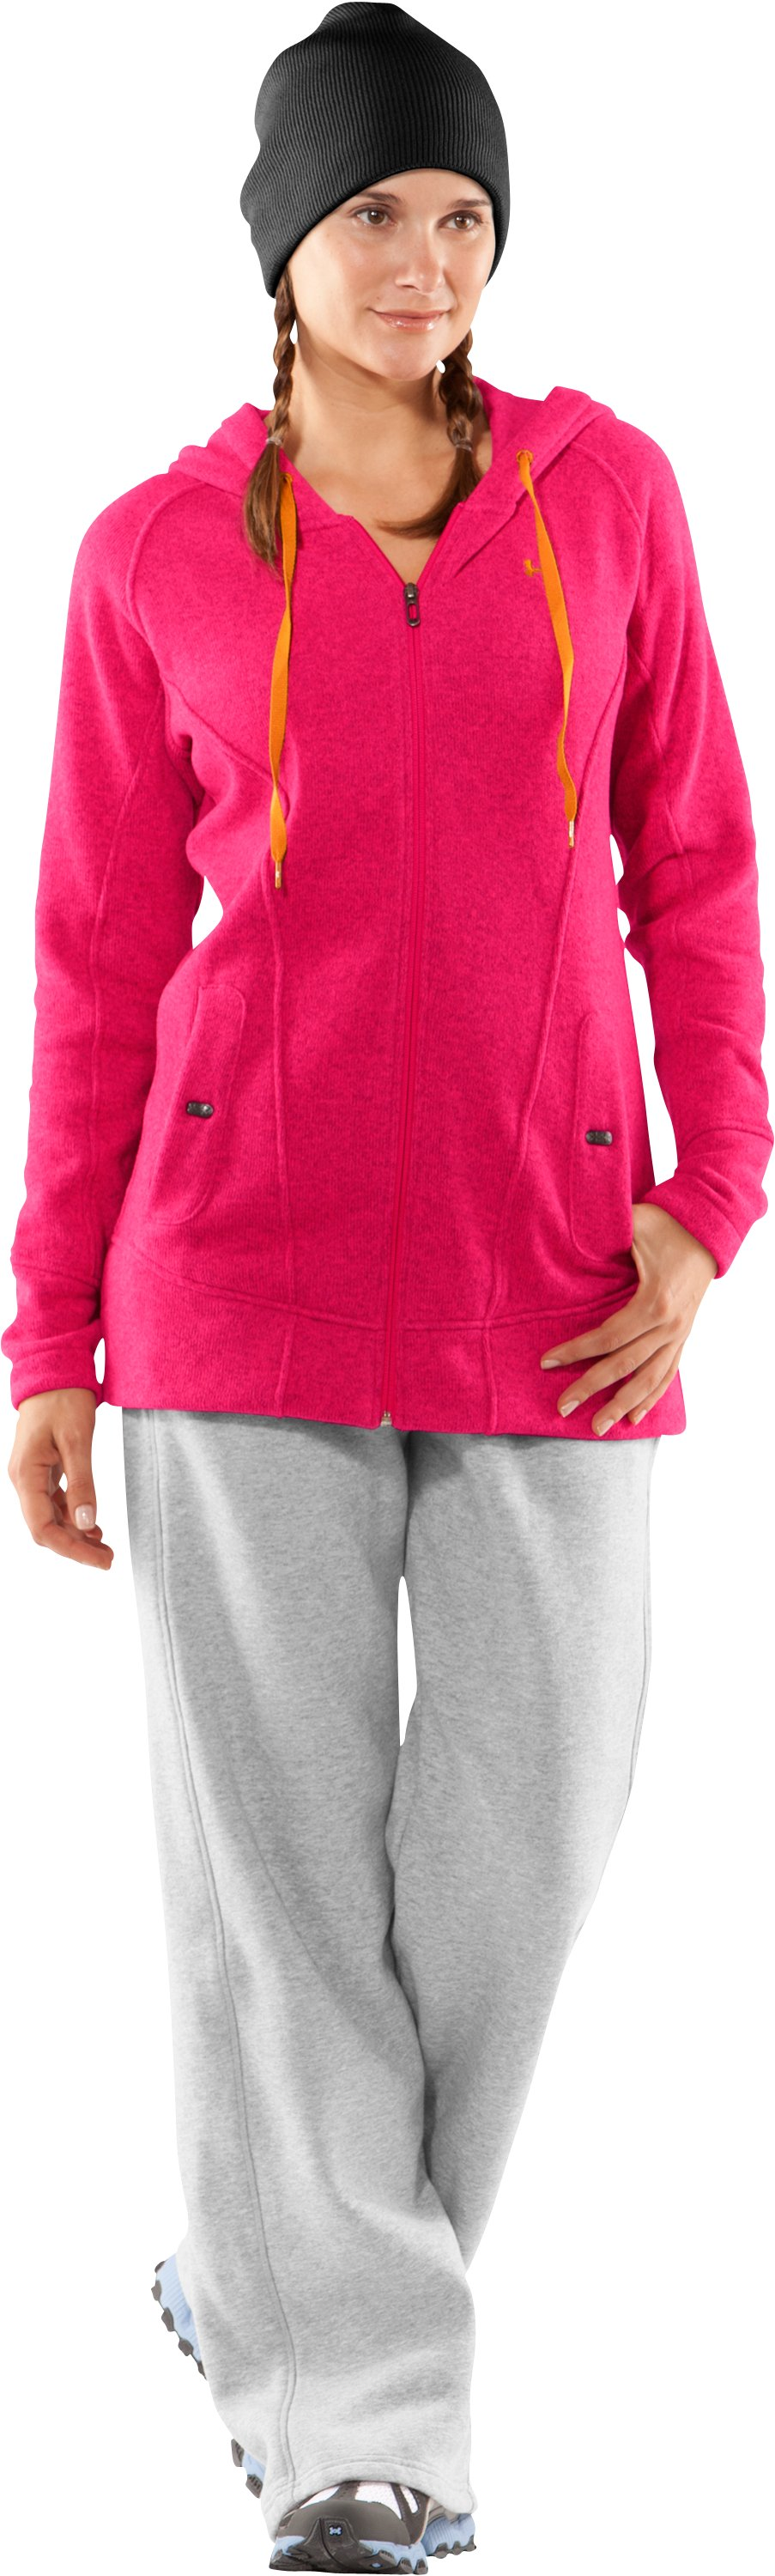 Women's Wintersweet Full Zip Fitted Hoodie, Hollywood